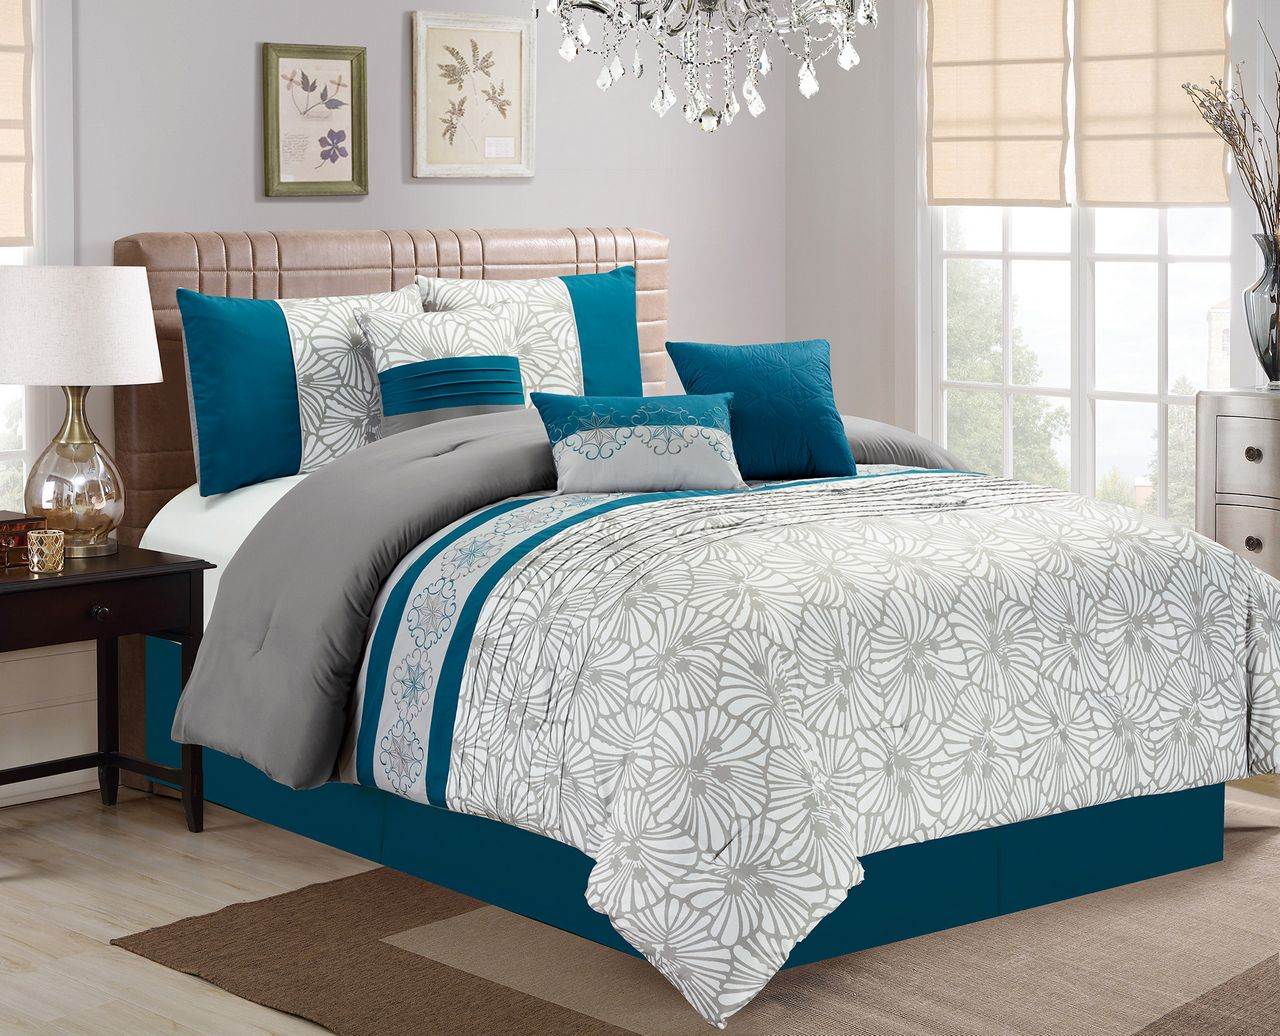 Image of: Gray Comforter Walmart Sets Queen Size